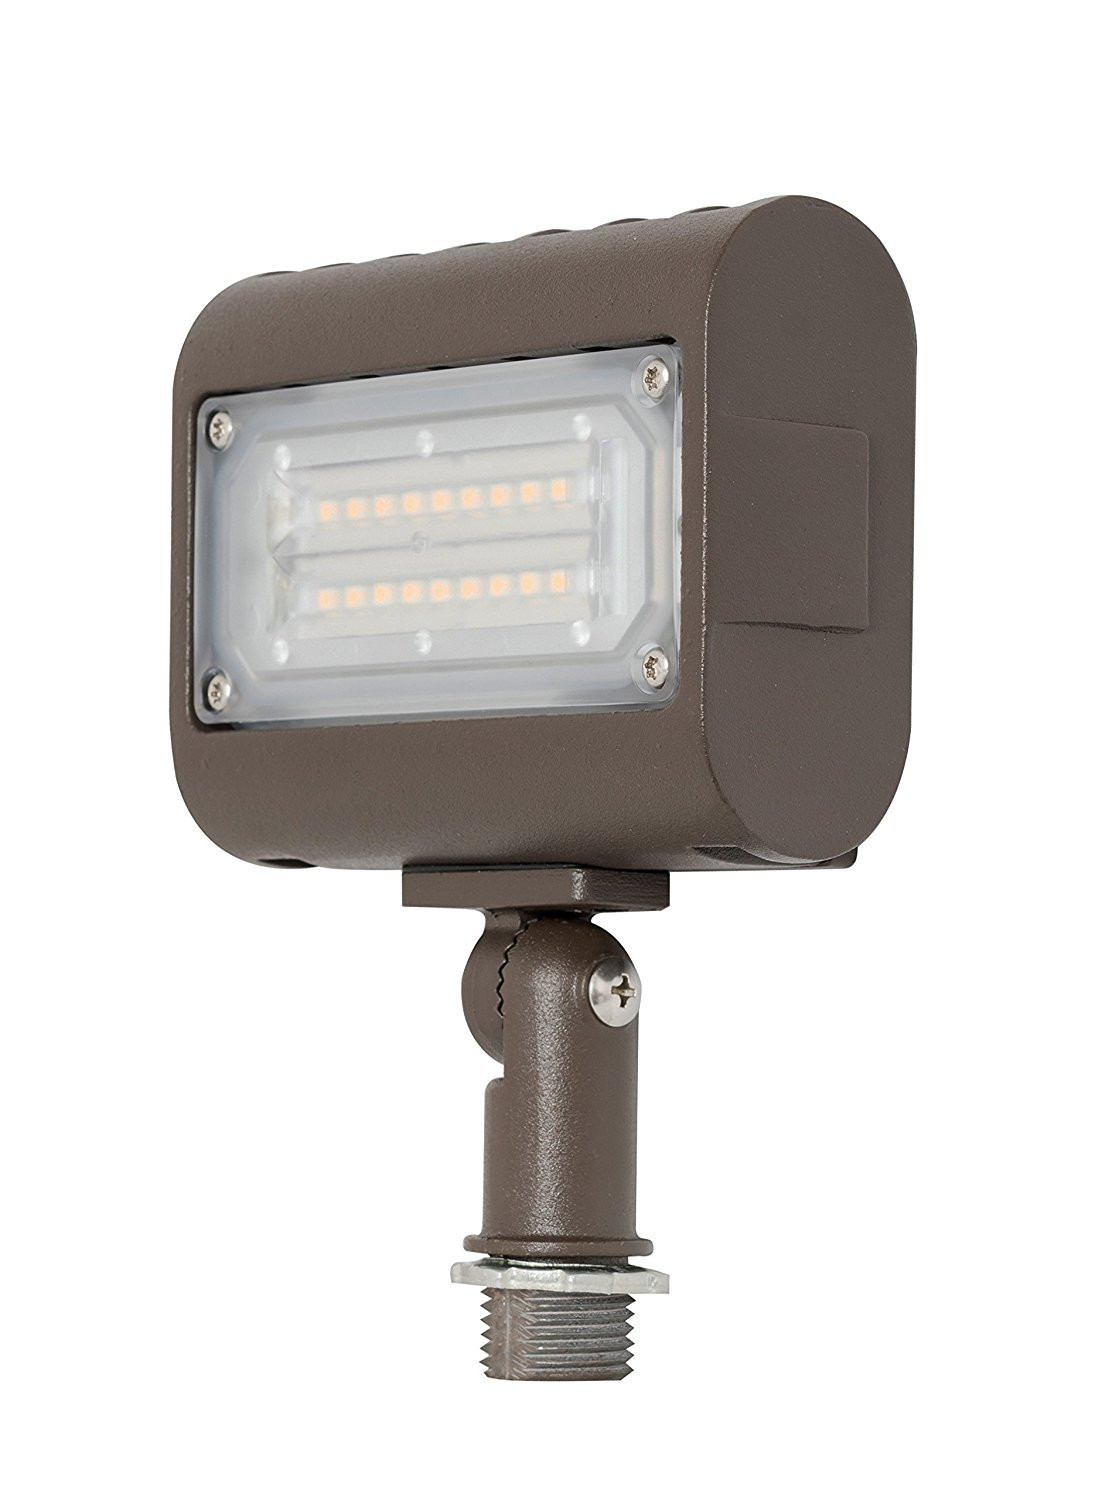 Best ideas about Outdoor Flood Light Fixtures . Save or Pin Westgate LED Outdoor Flood Light – Knuckle Mount Security Now.